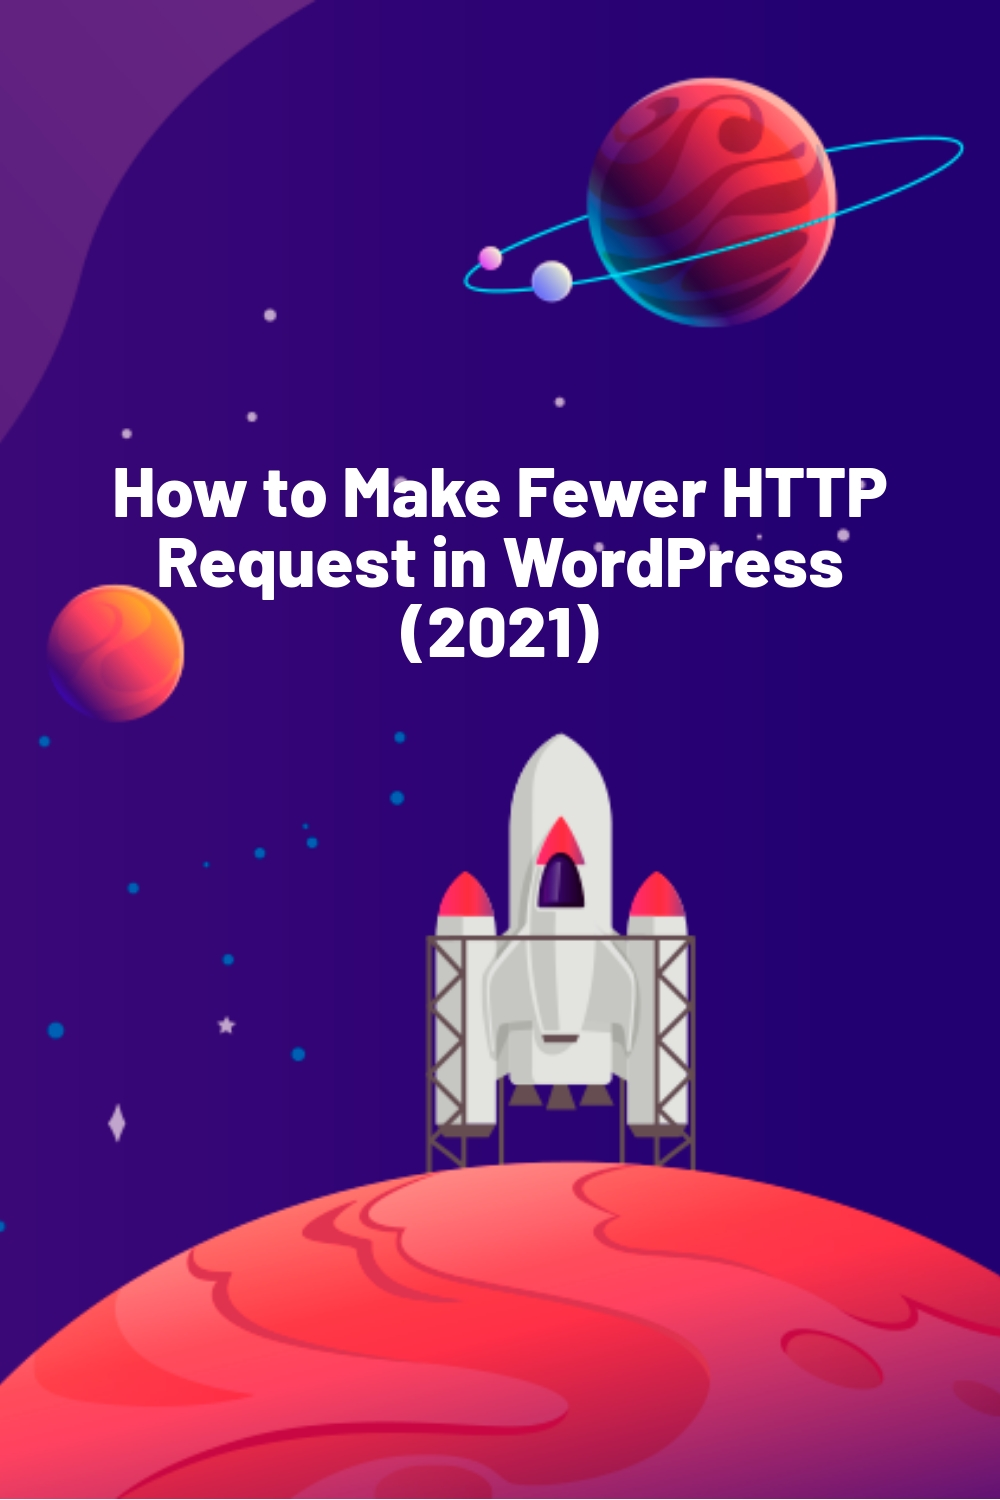 How to Make Fewer HTTP Request in WordPress (2021)